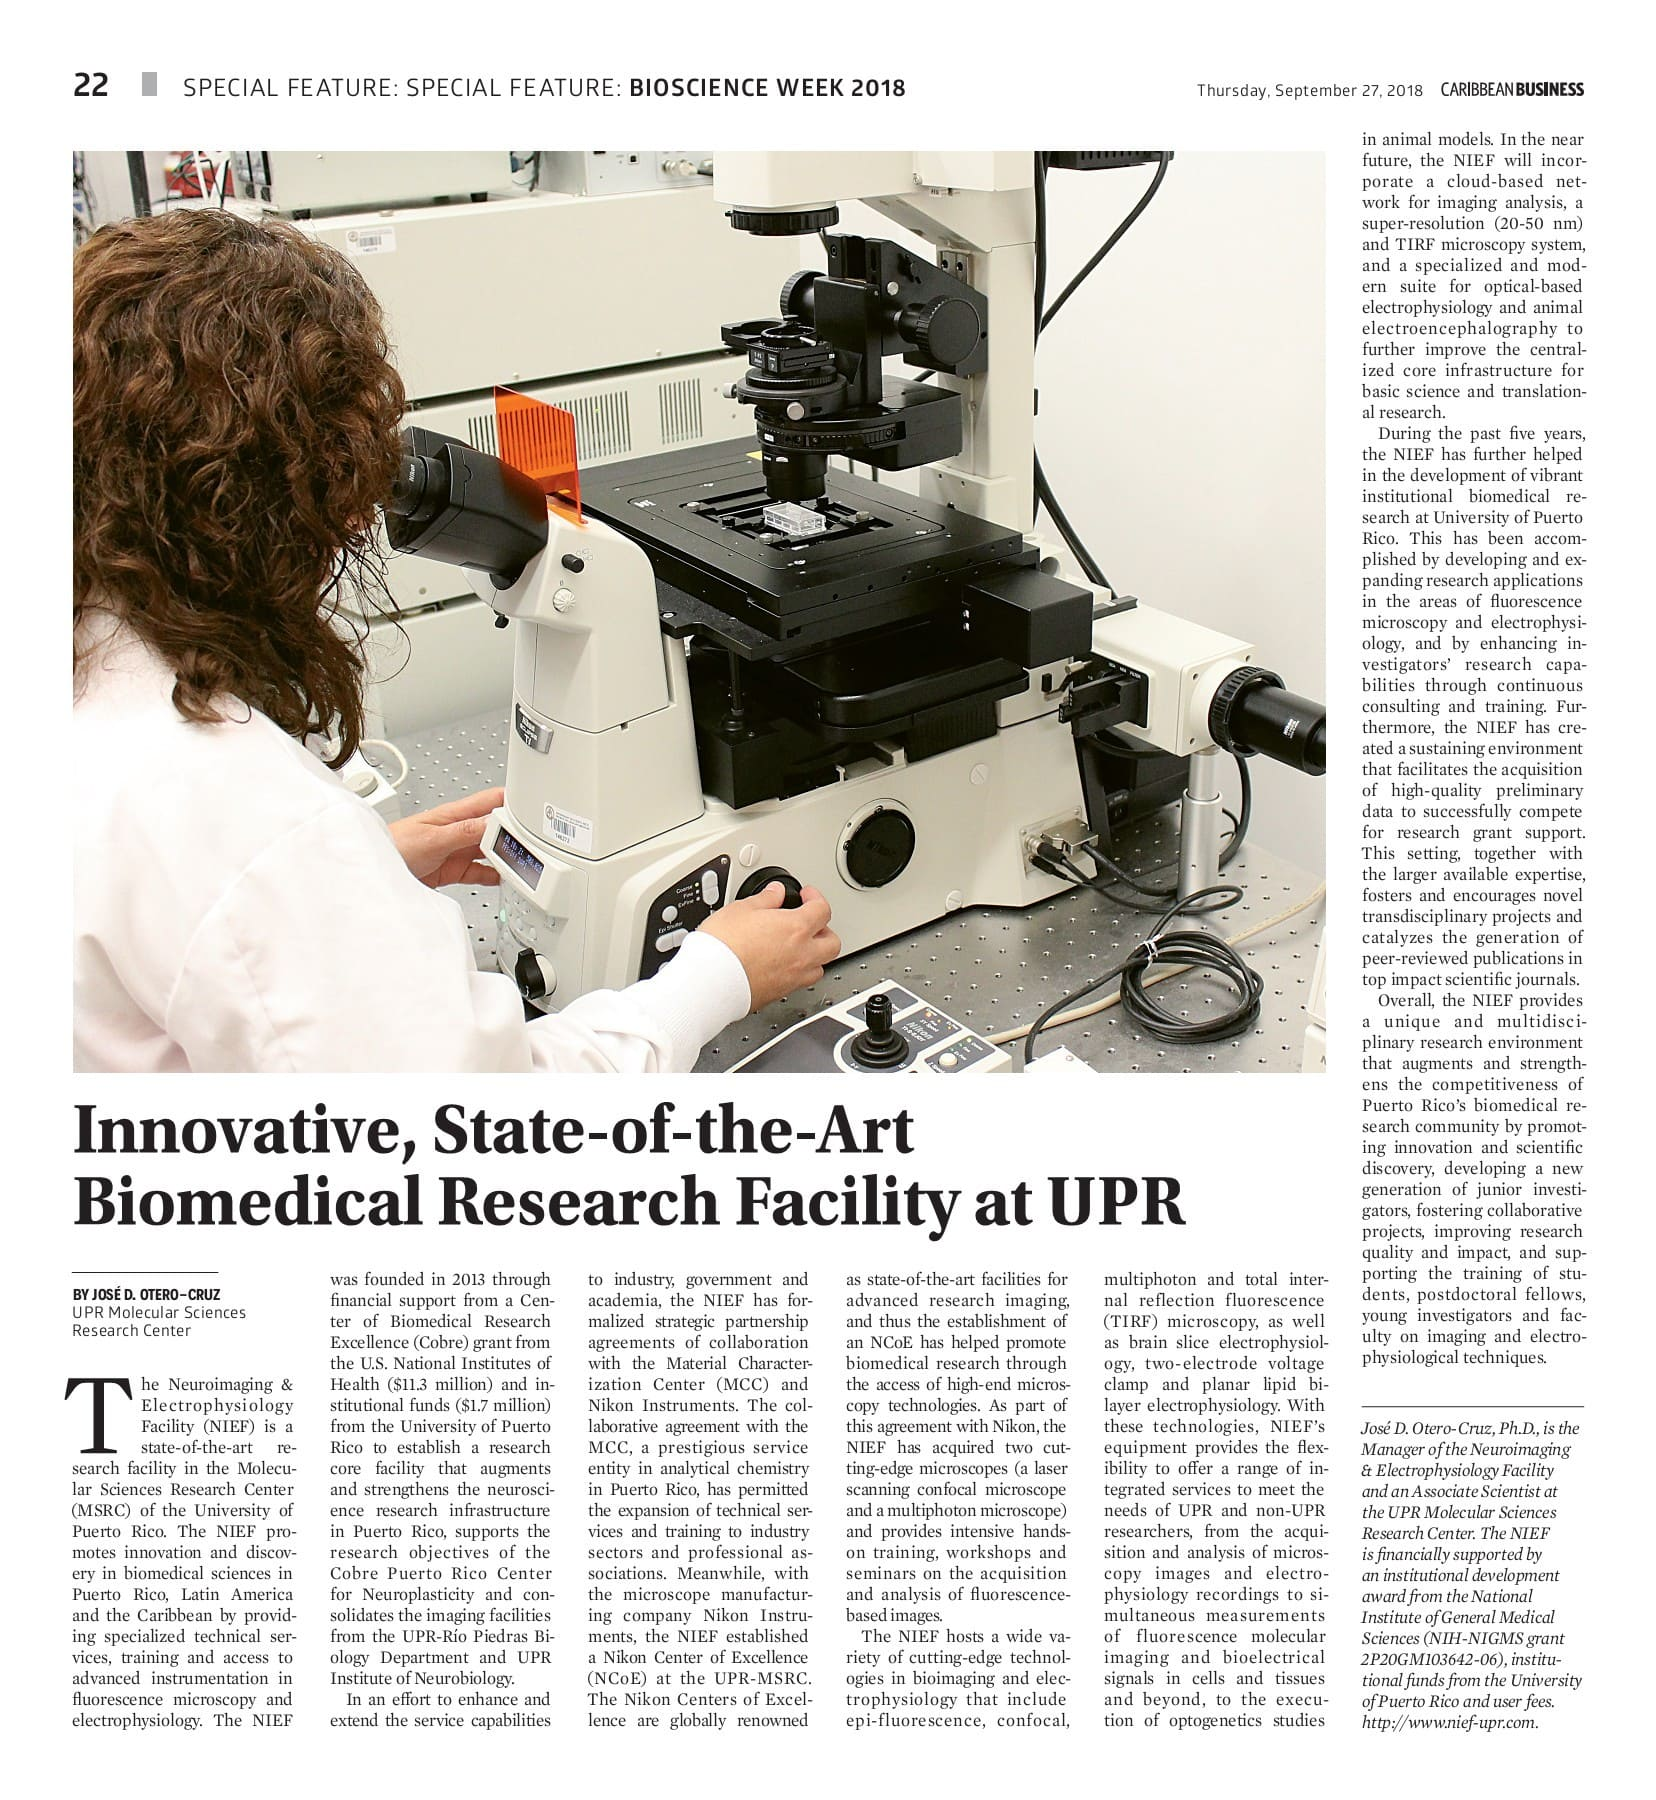 Innovative State-of-the-Art Biomedical Research Facility at UPR